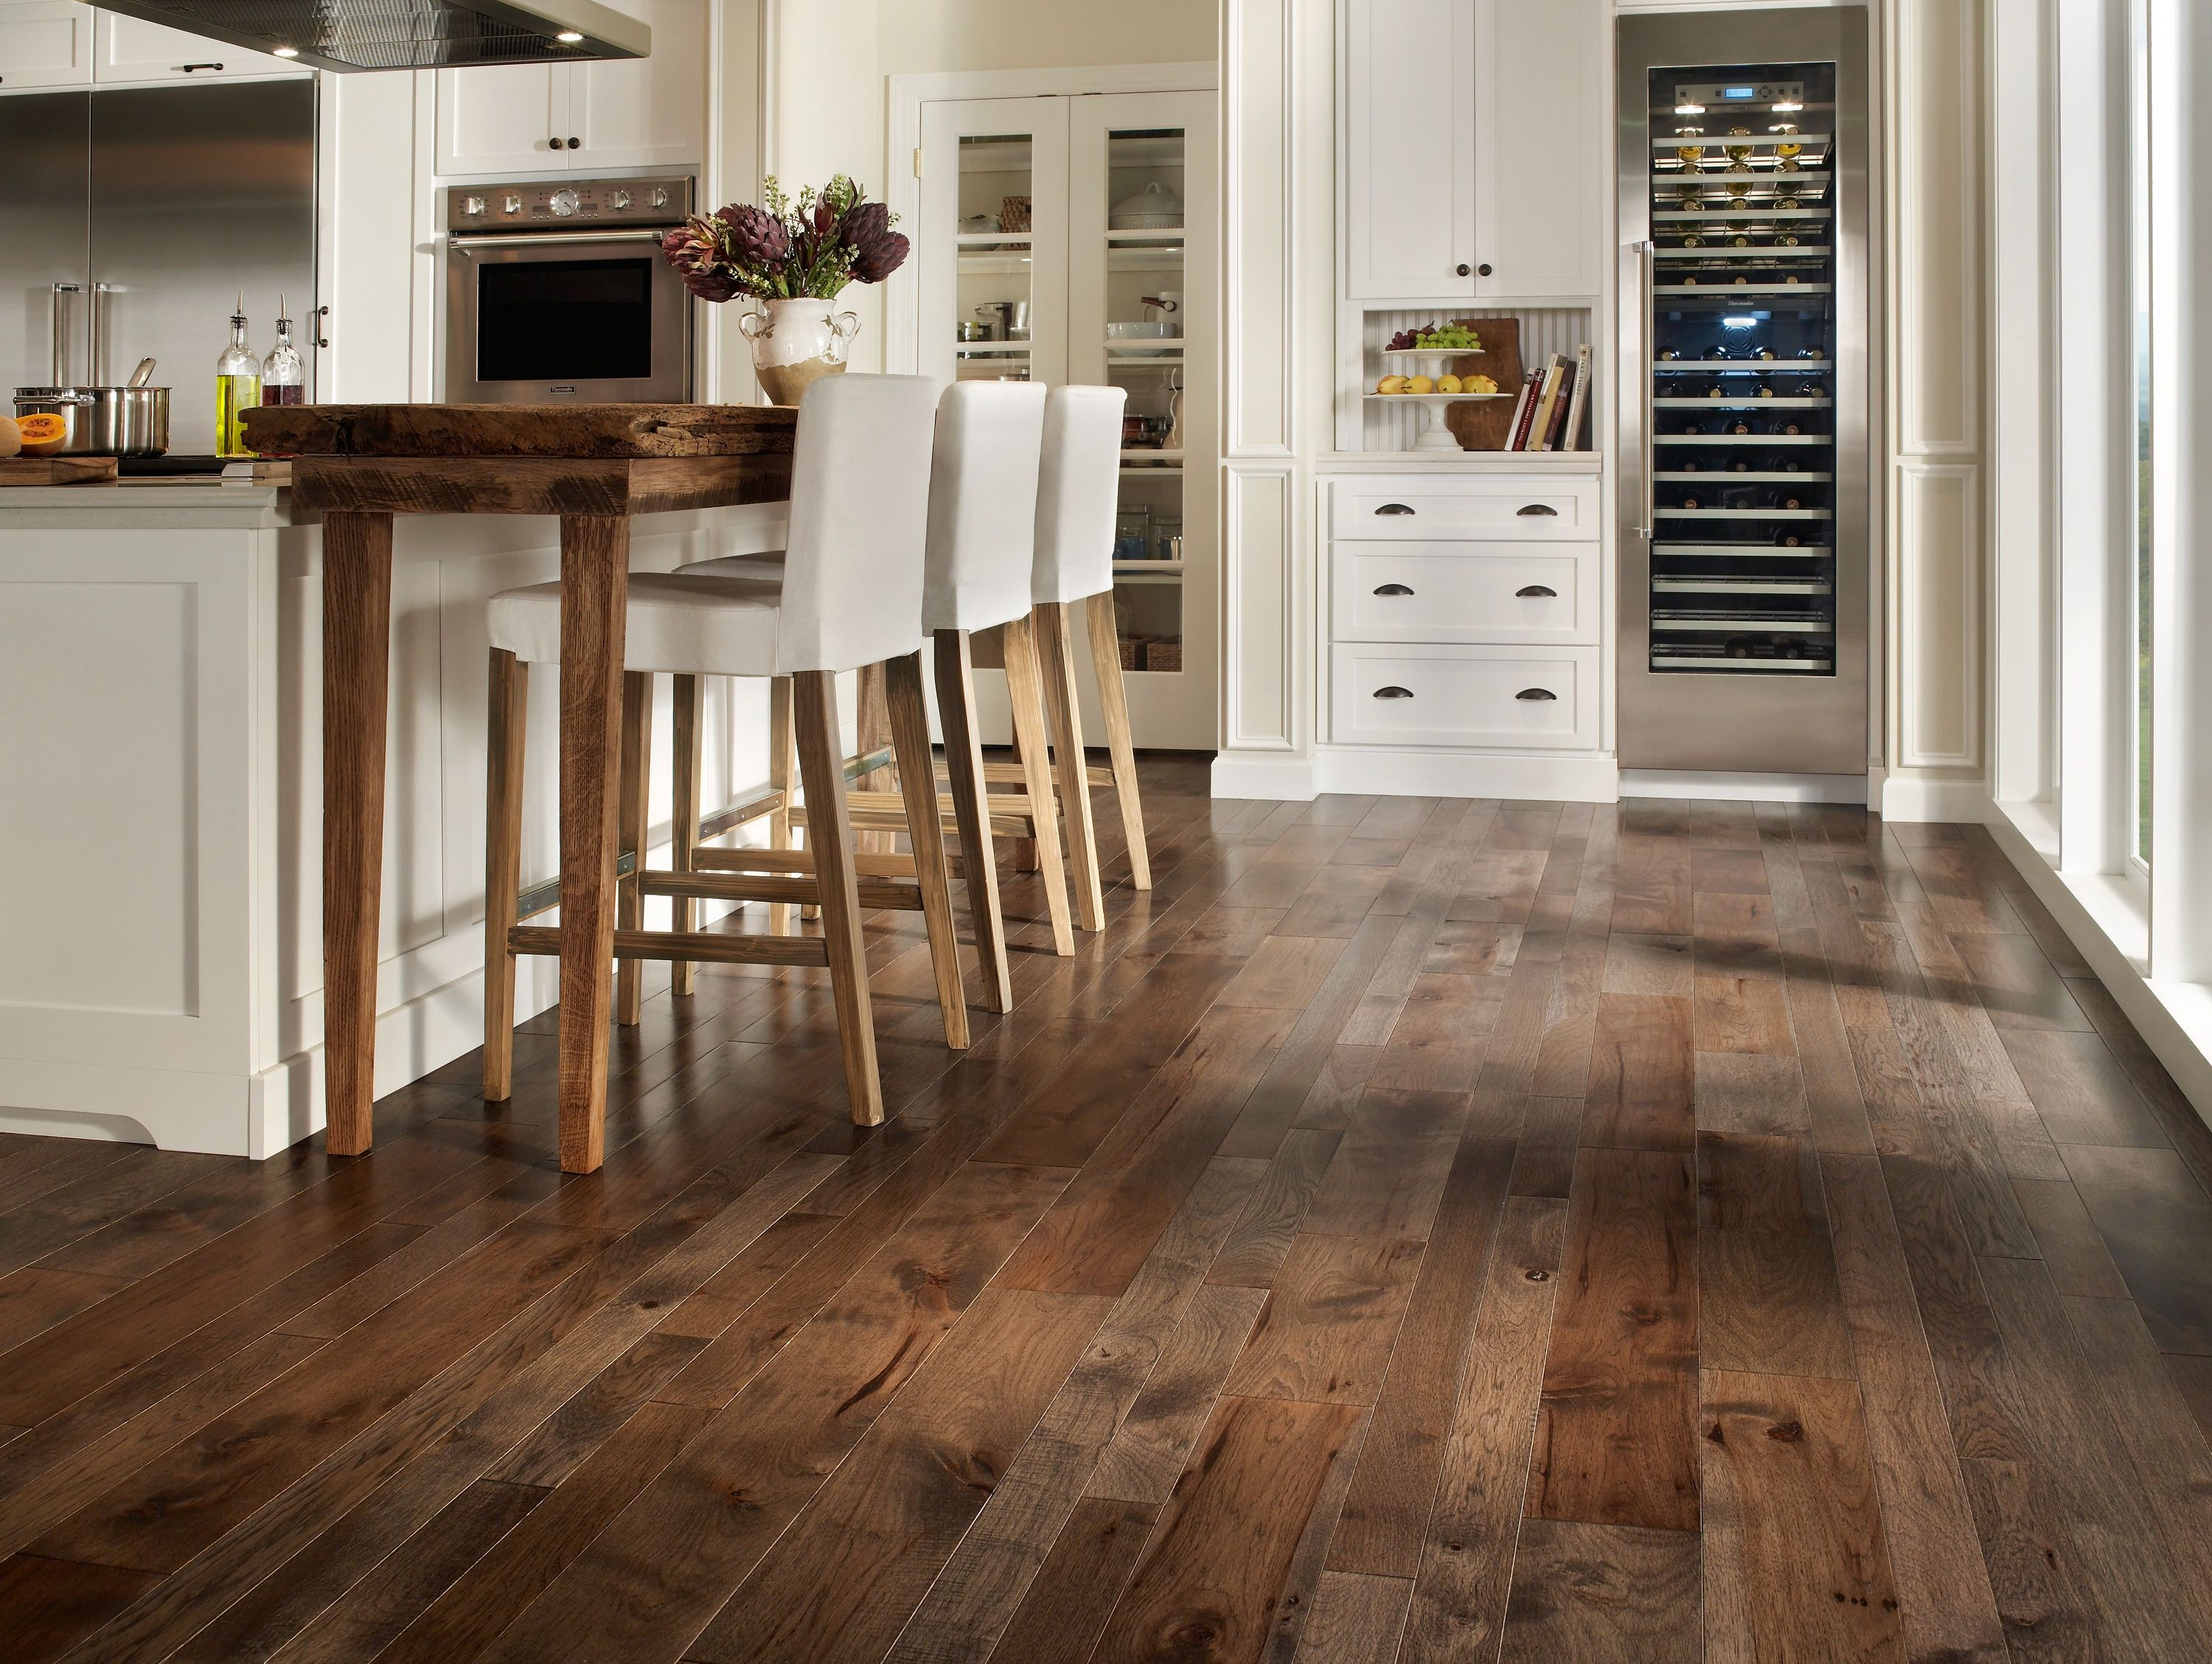 Laminate Or Engineered Wood Flooring For Kitchen | Hayden House ...